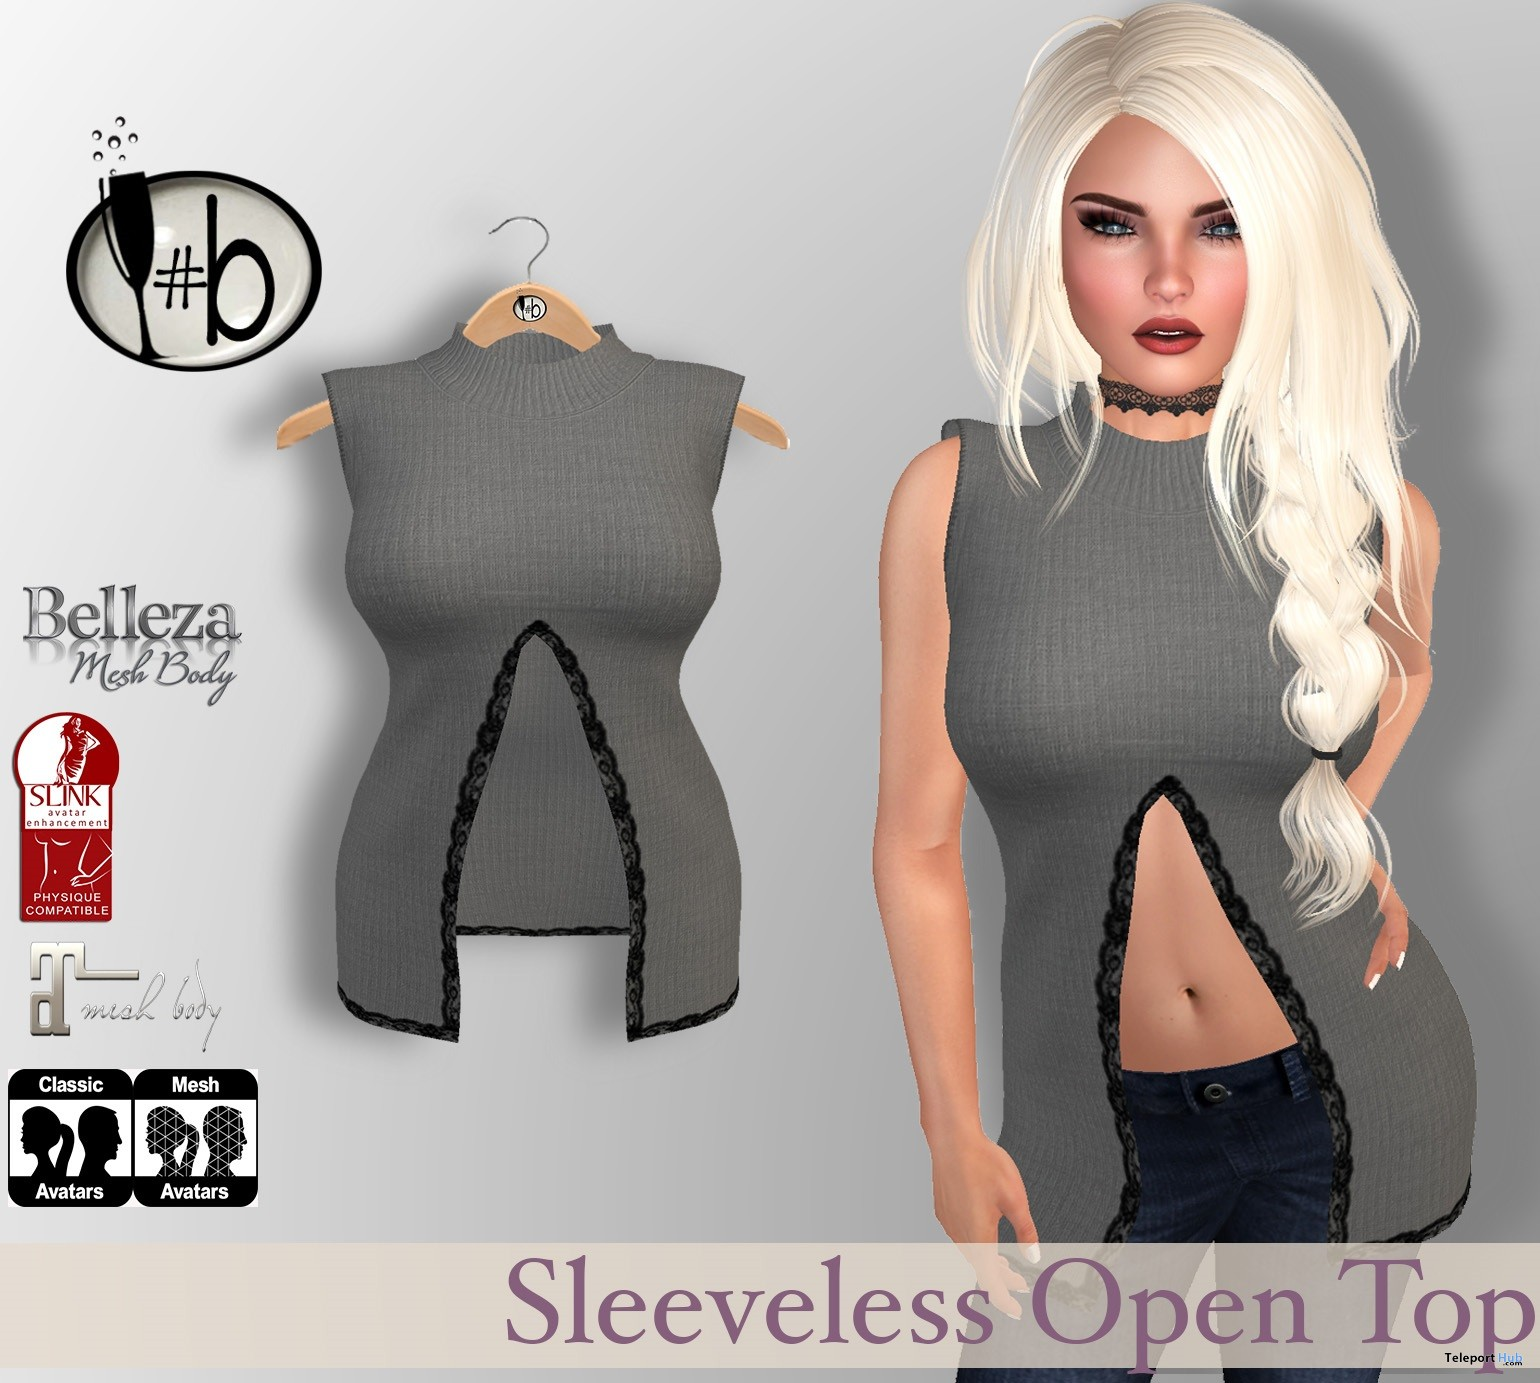 Sleeveless Top with Slit & Lace Accent January 2017 Group Gift by #bubbles - Teleport Hub - teleporthub.com